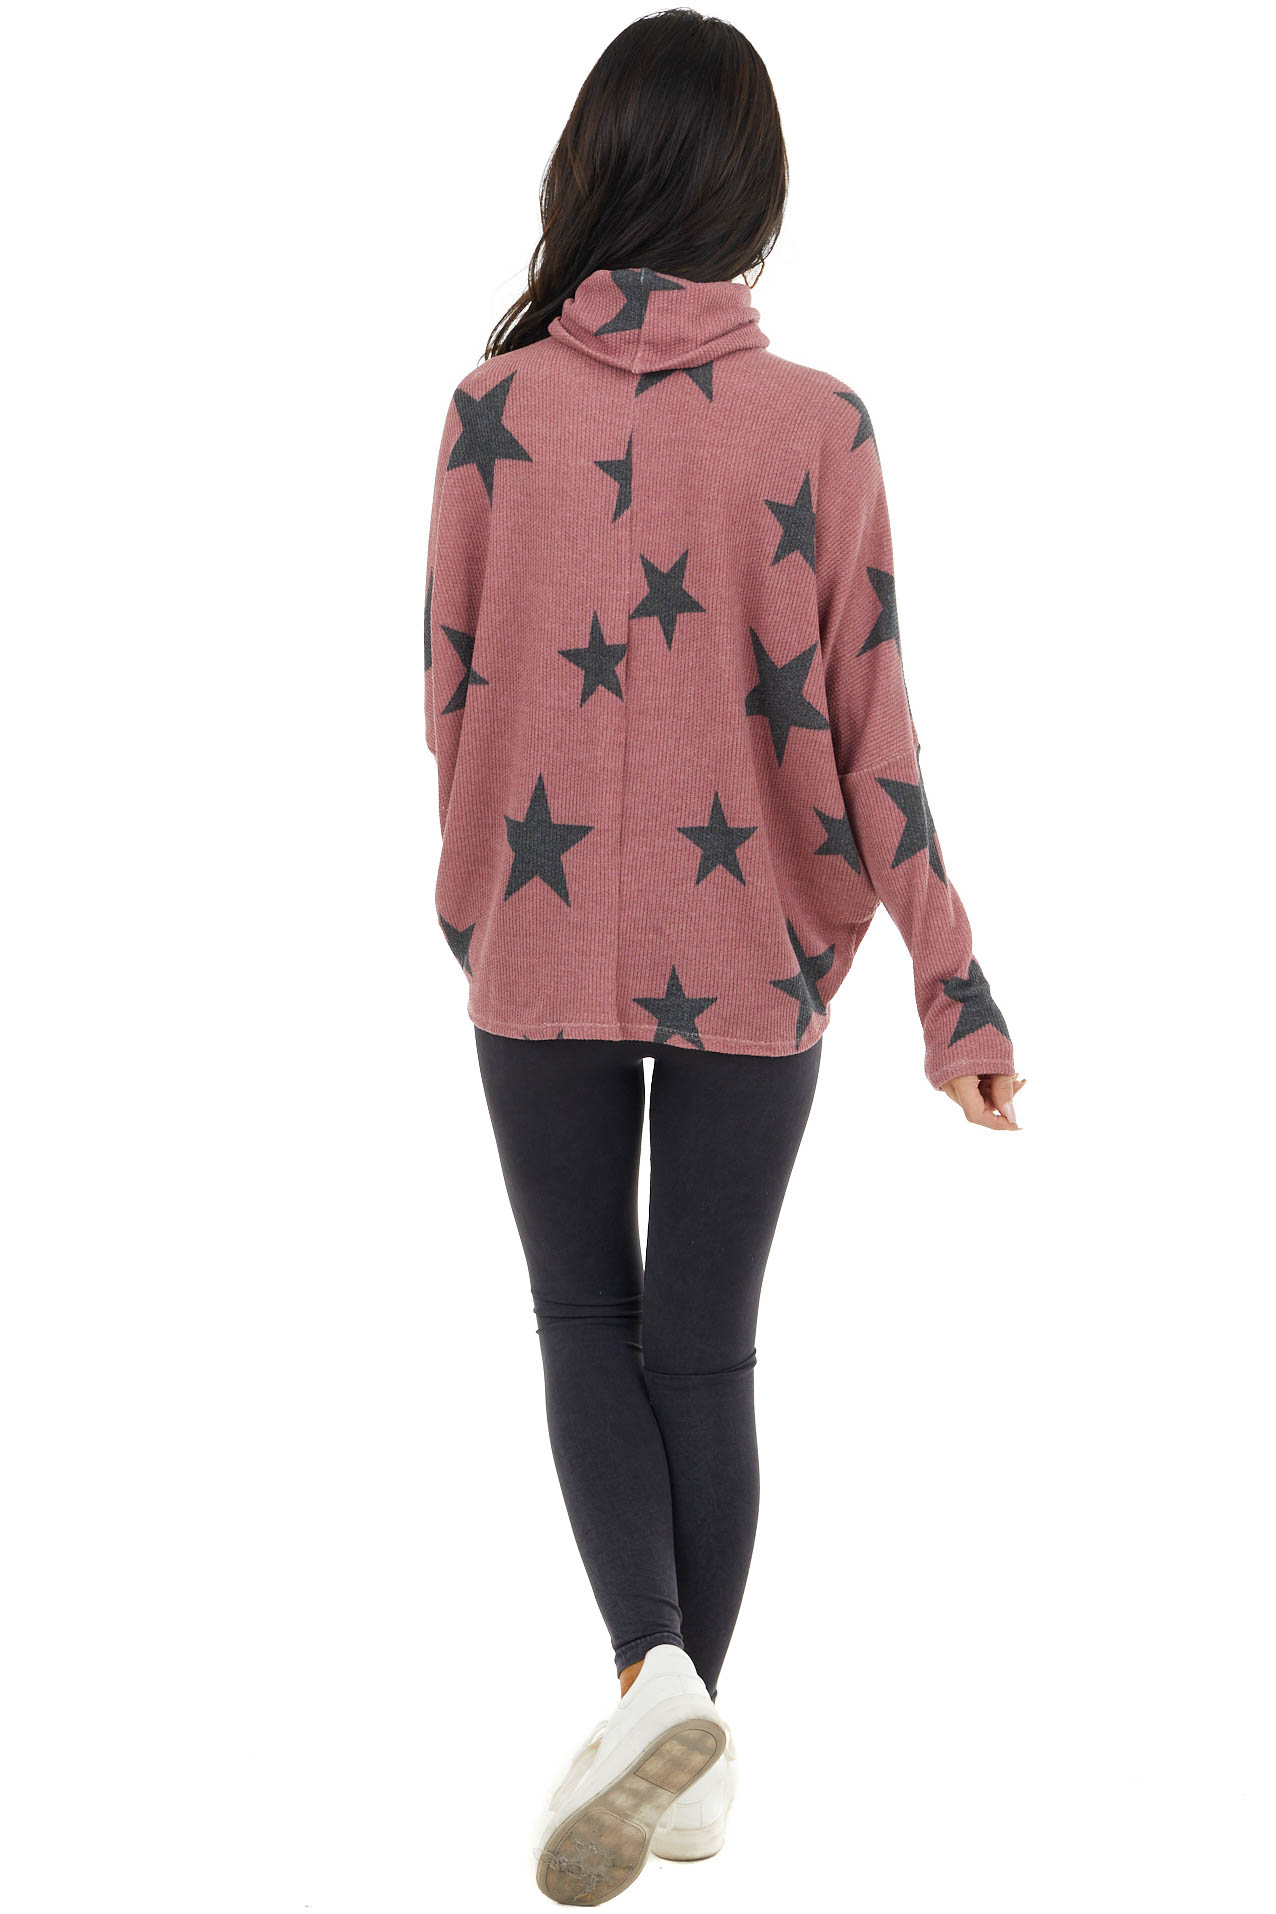 Light Wine Star Print Top with Cowl Neck and V Cutout Detail